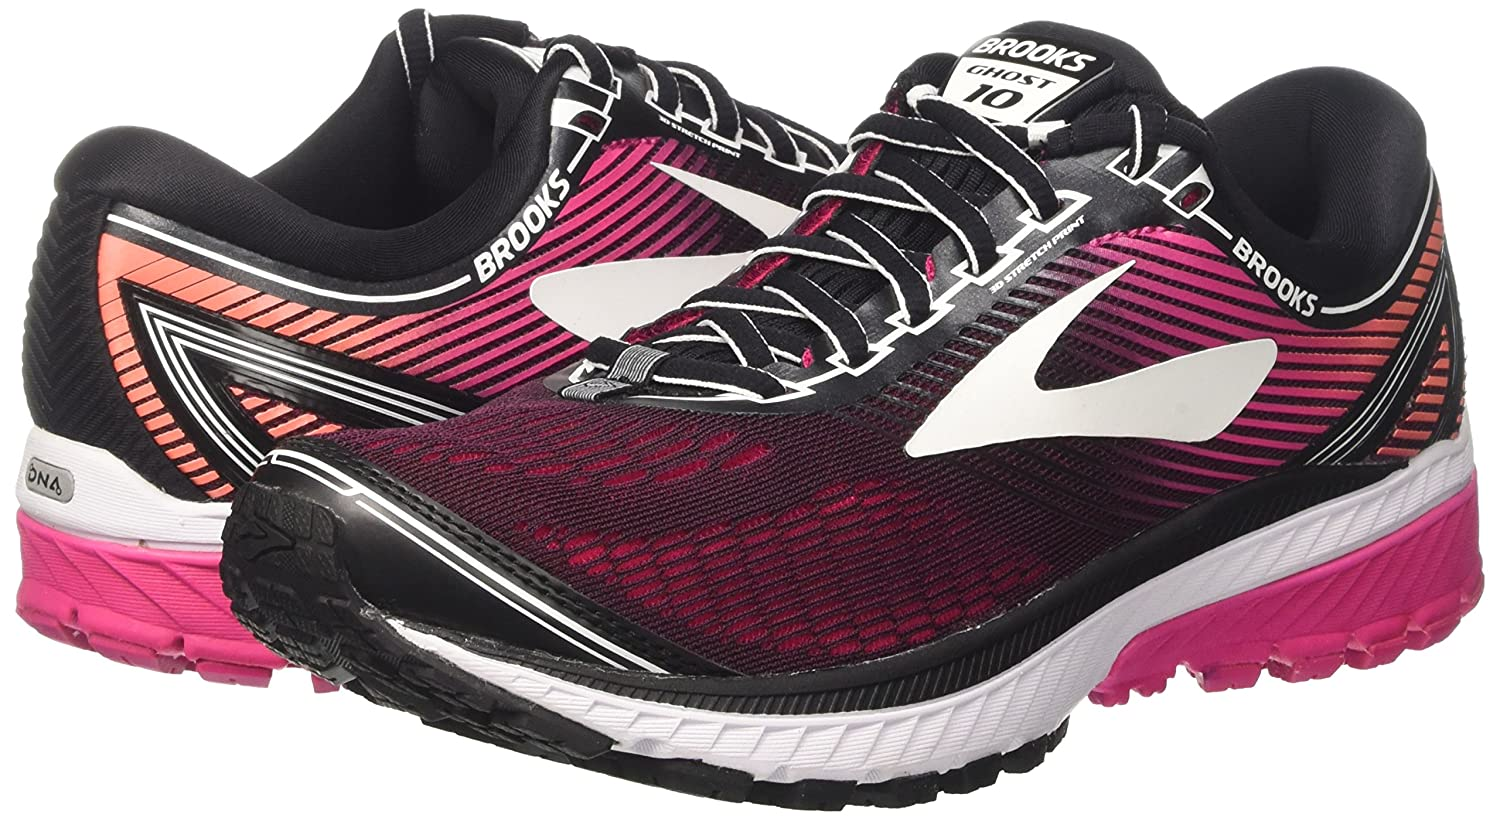 Brooks Women's Ghost 10 Running Shoe B01N8POXBZ 6.5 AA US|Black/Pink Peacock/Living Coral